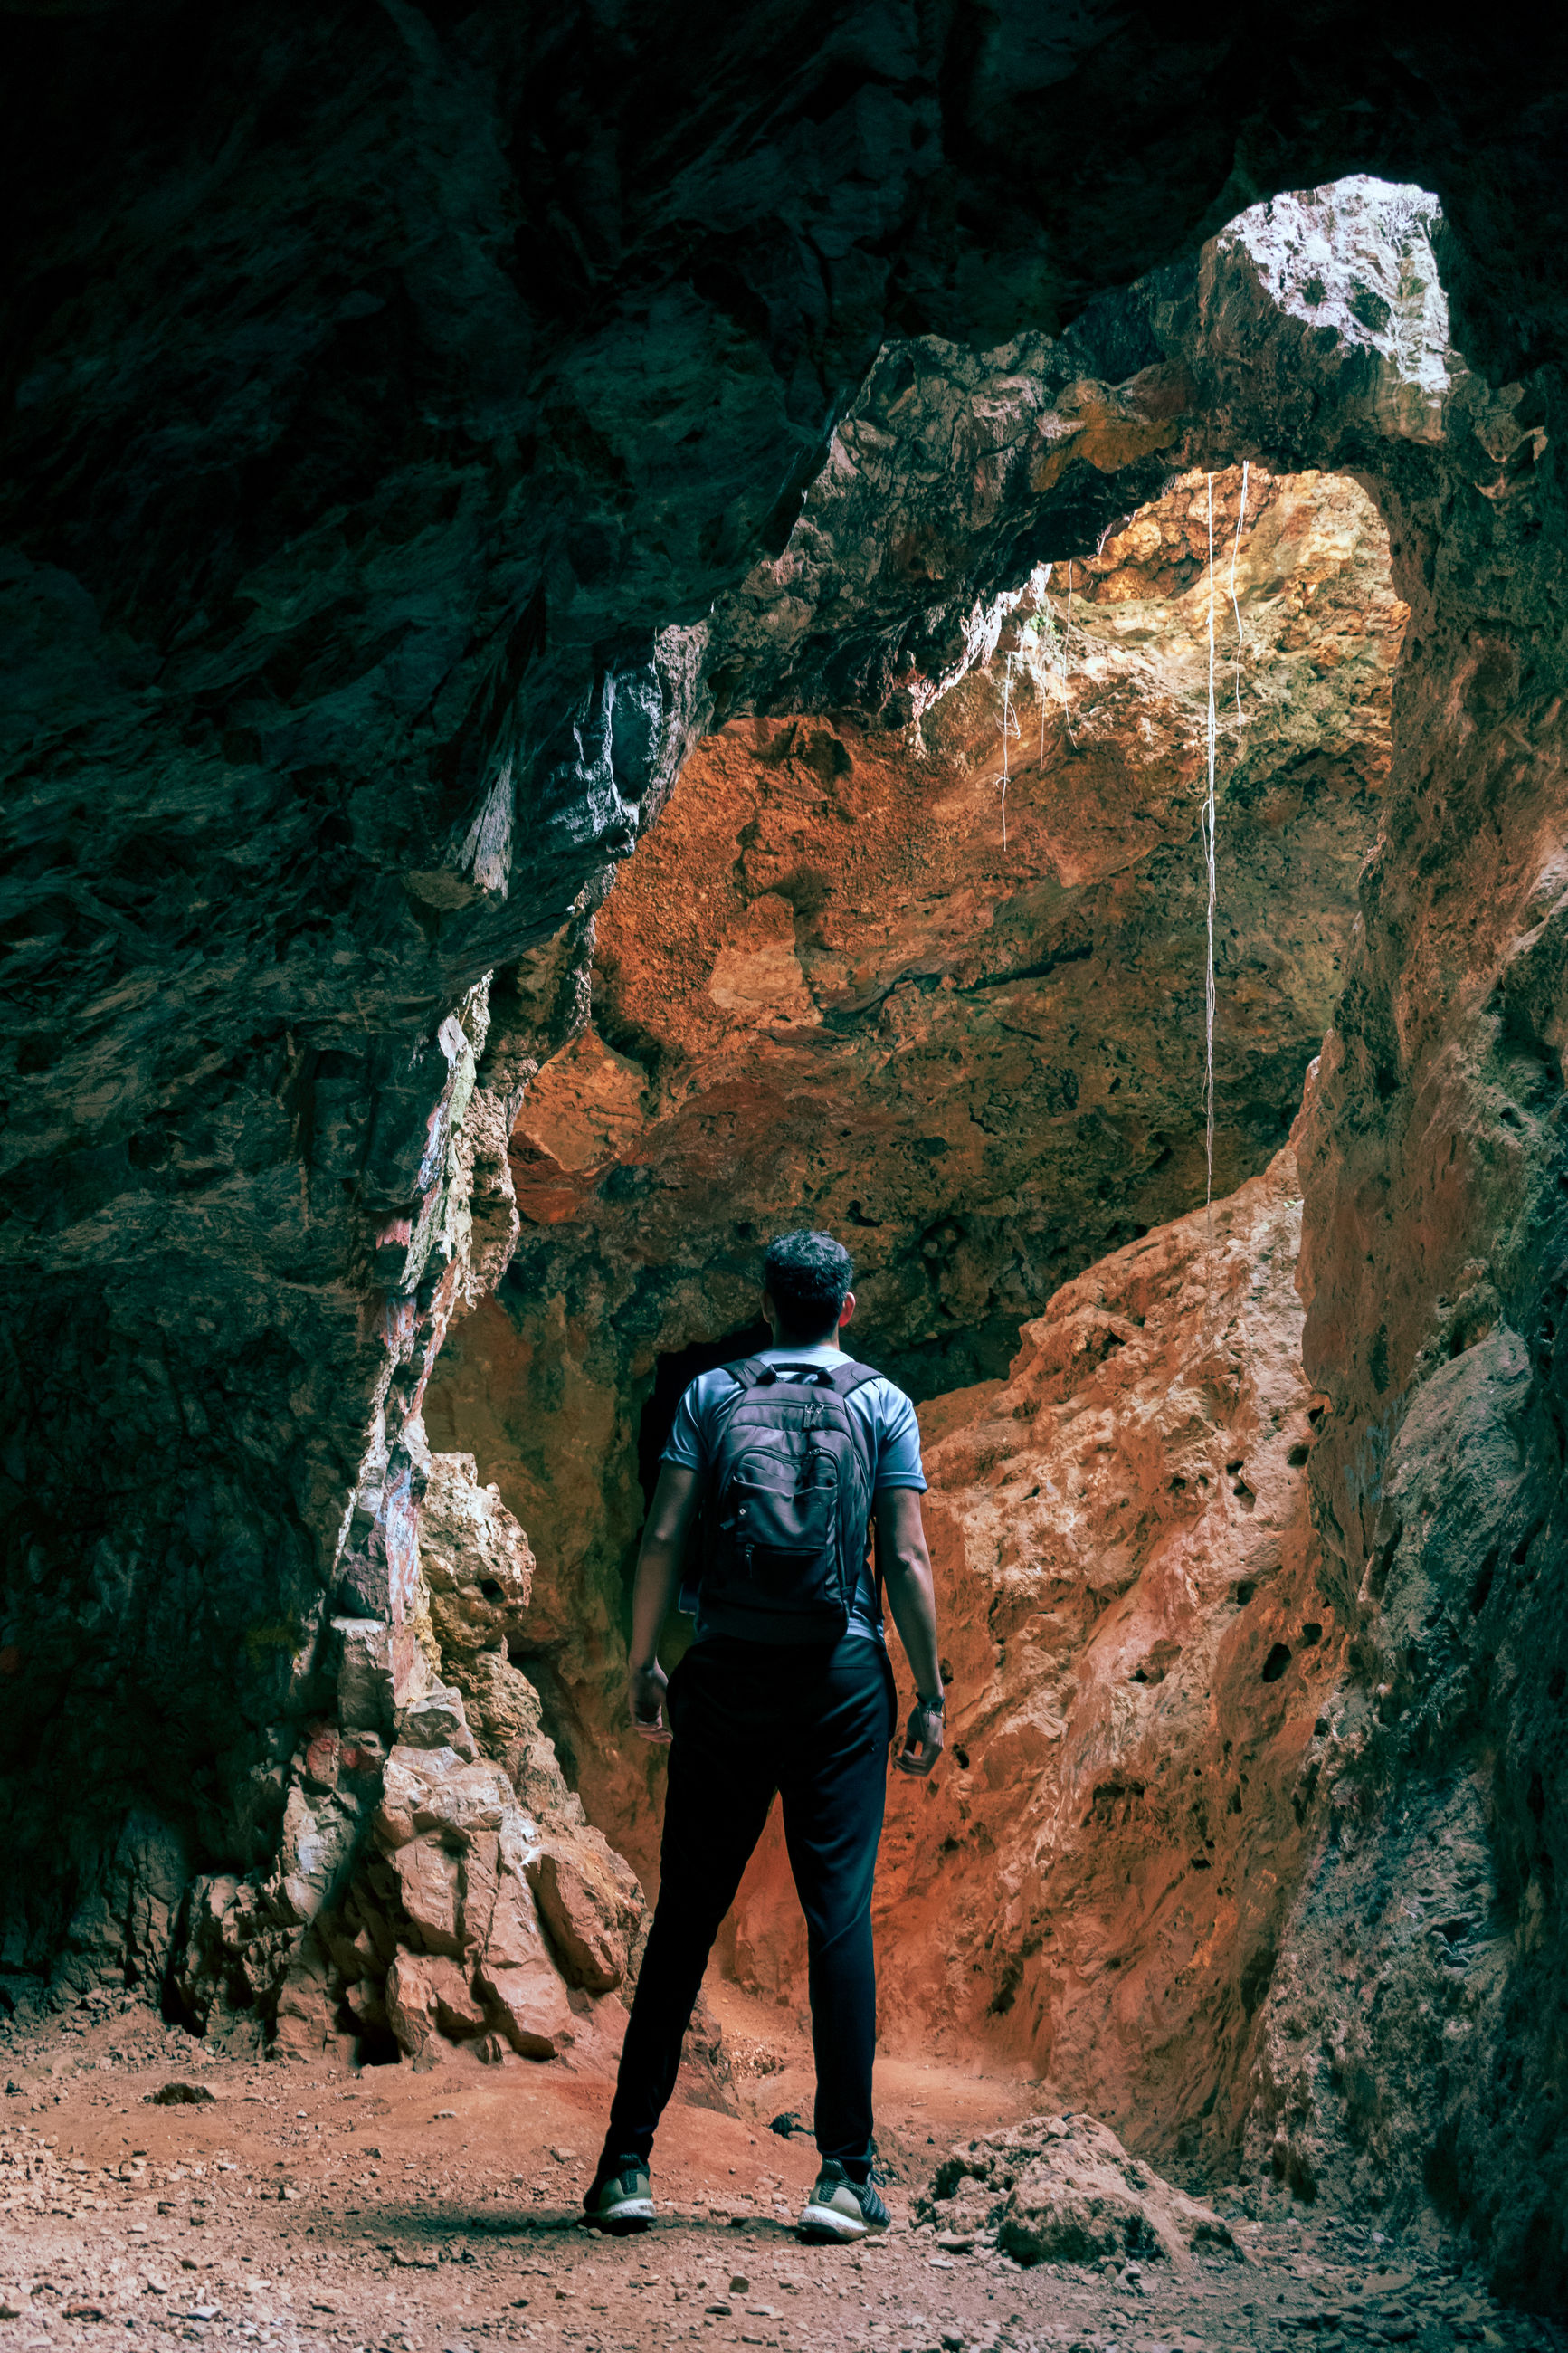 leisure activity, rear view, one person, full length, real people, adventure, rock, hiking, lifestyles, activity, backpack, rock - object, mountain, nature, standing, men, solid, rock formation, travel, outdoors, formation